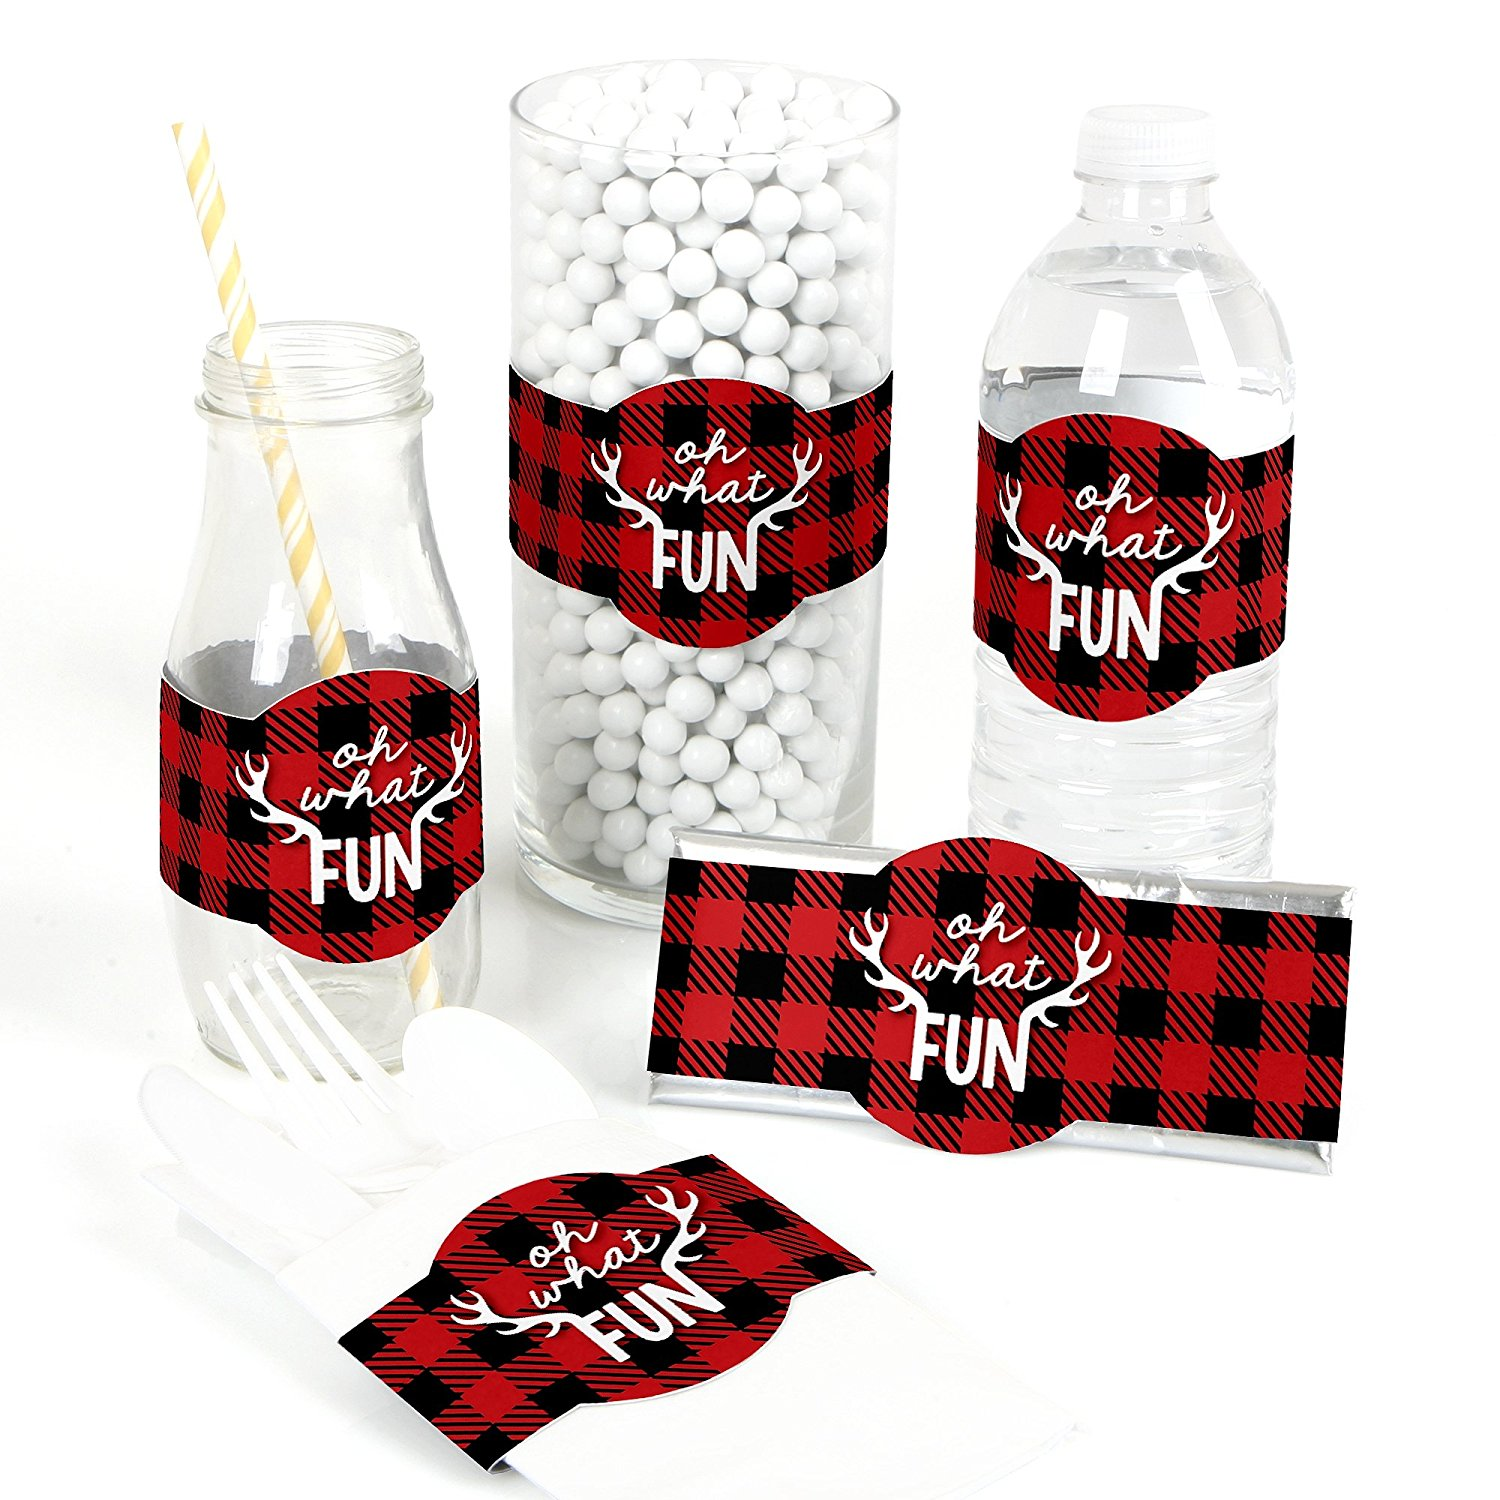 Prancing Plaid - DIY Party Supplies - Buffalo Plaid Holiday or Christmas Party DIY Wrapper Favors & Decorations - Set of 15